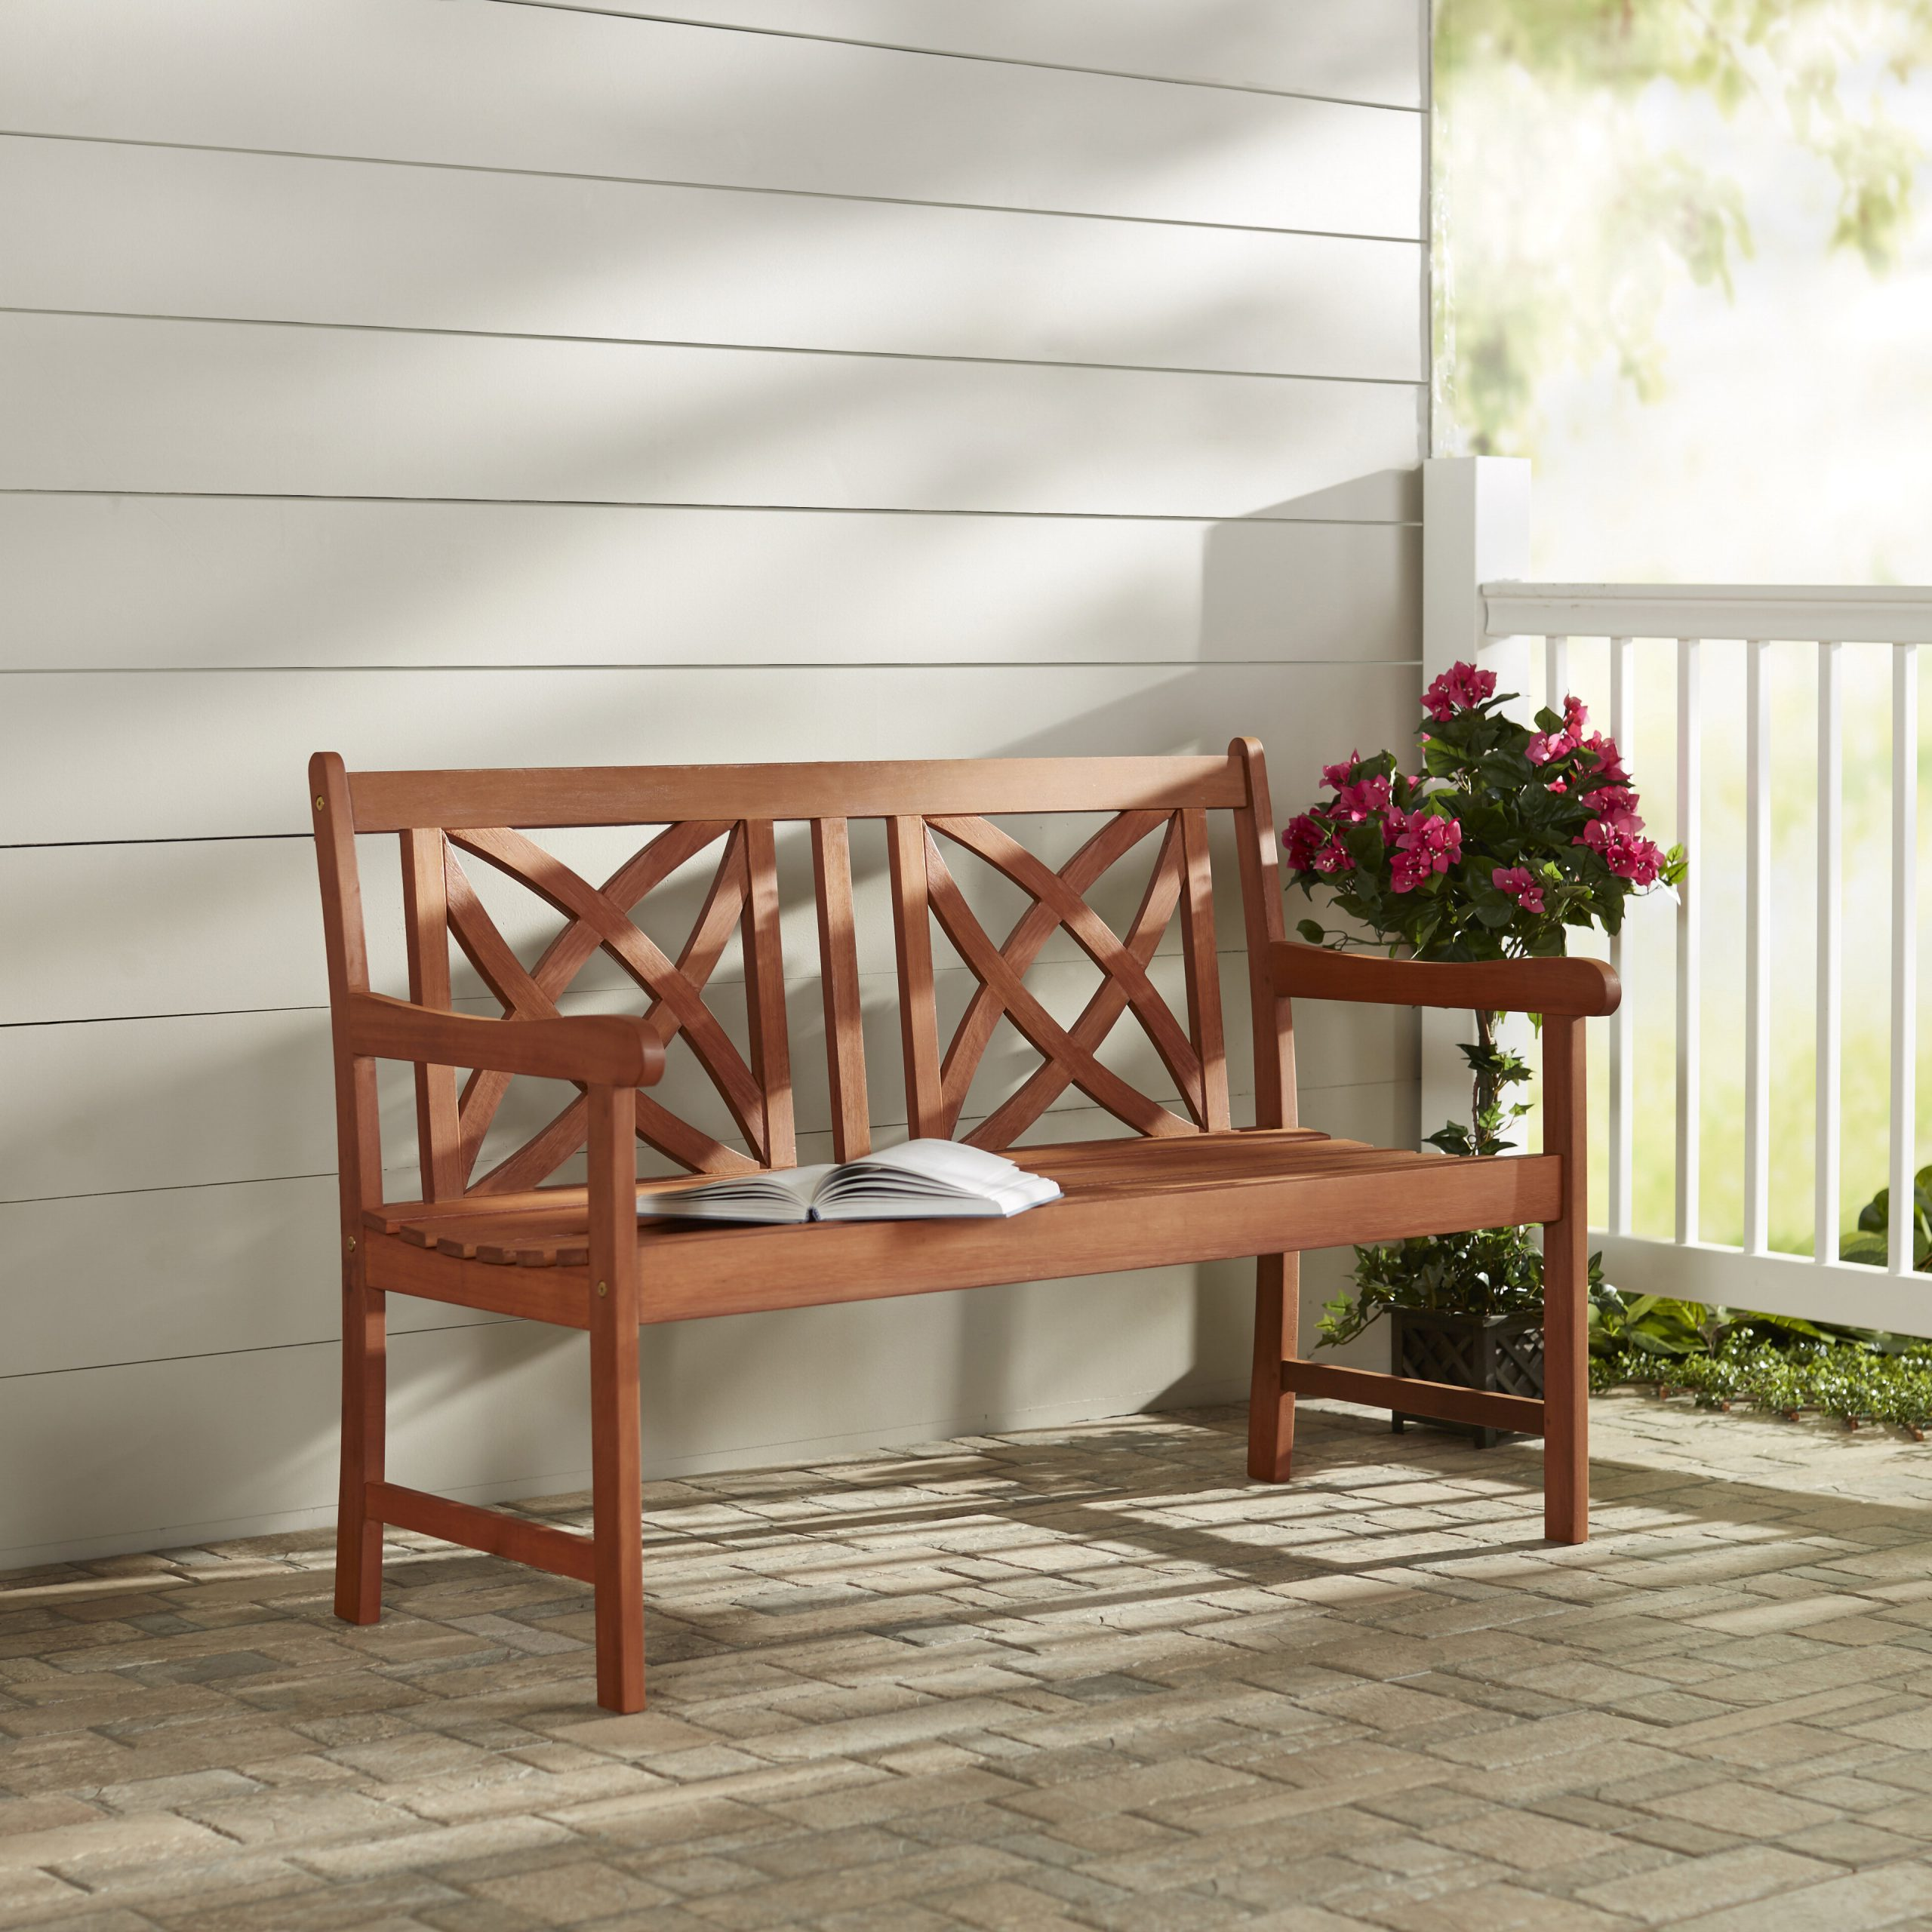 Maliyah Solid Wood Garden Bench With Regard To Famous Avoca Wood Garden Benches (View 6 of 30)